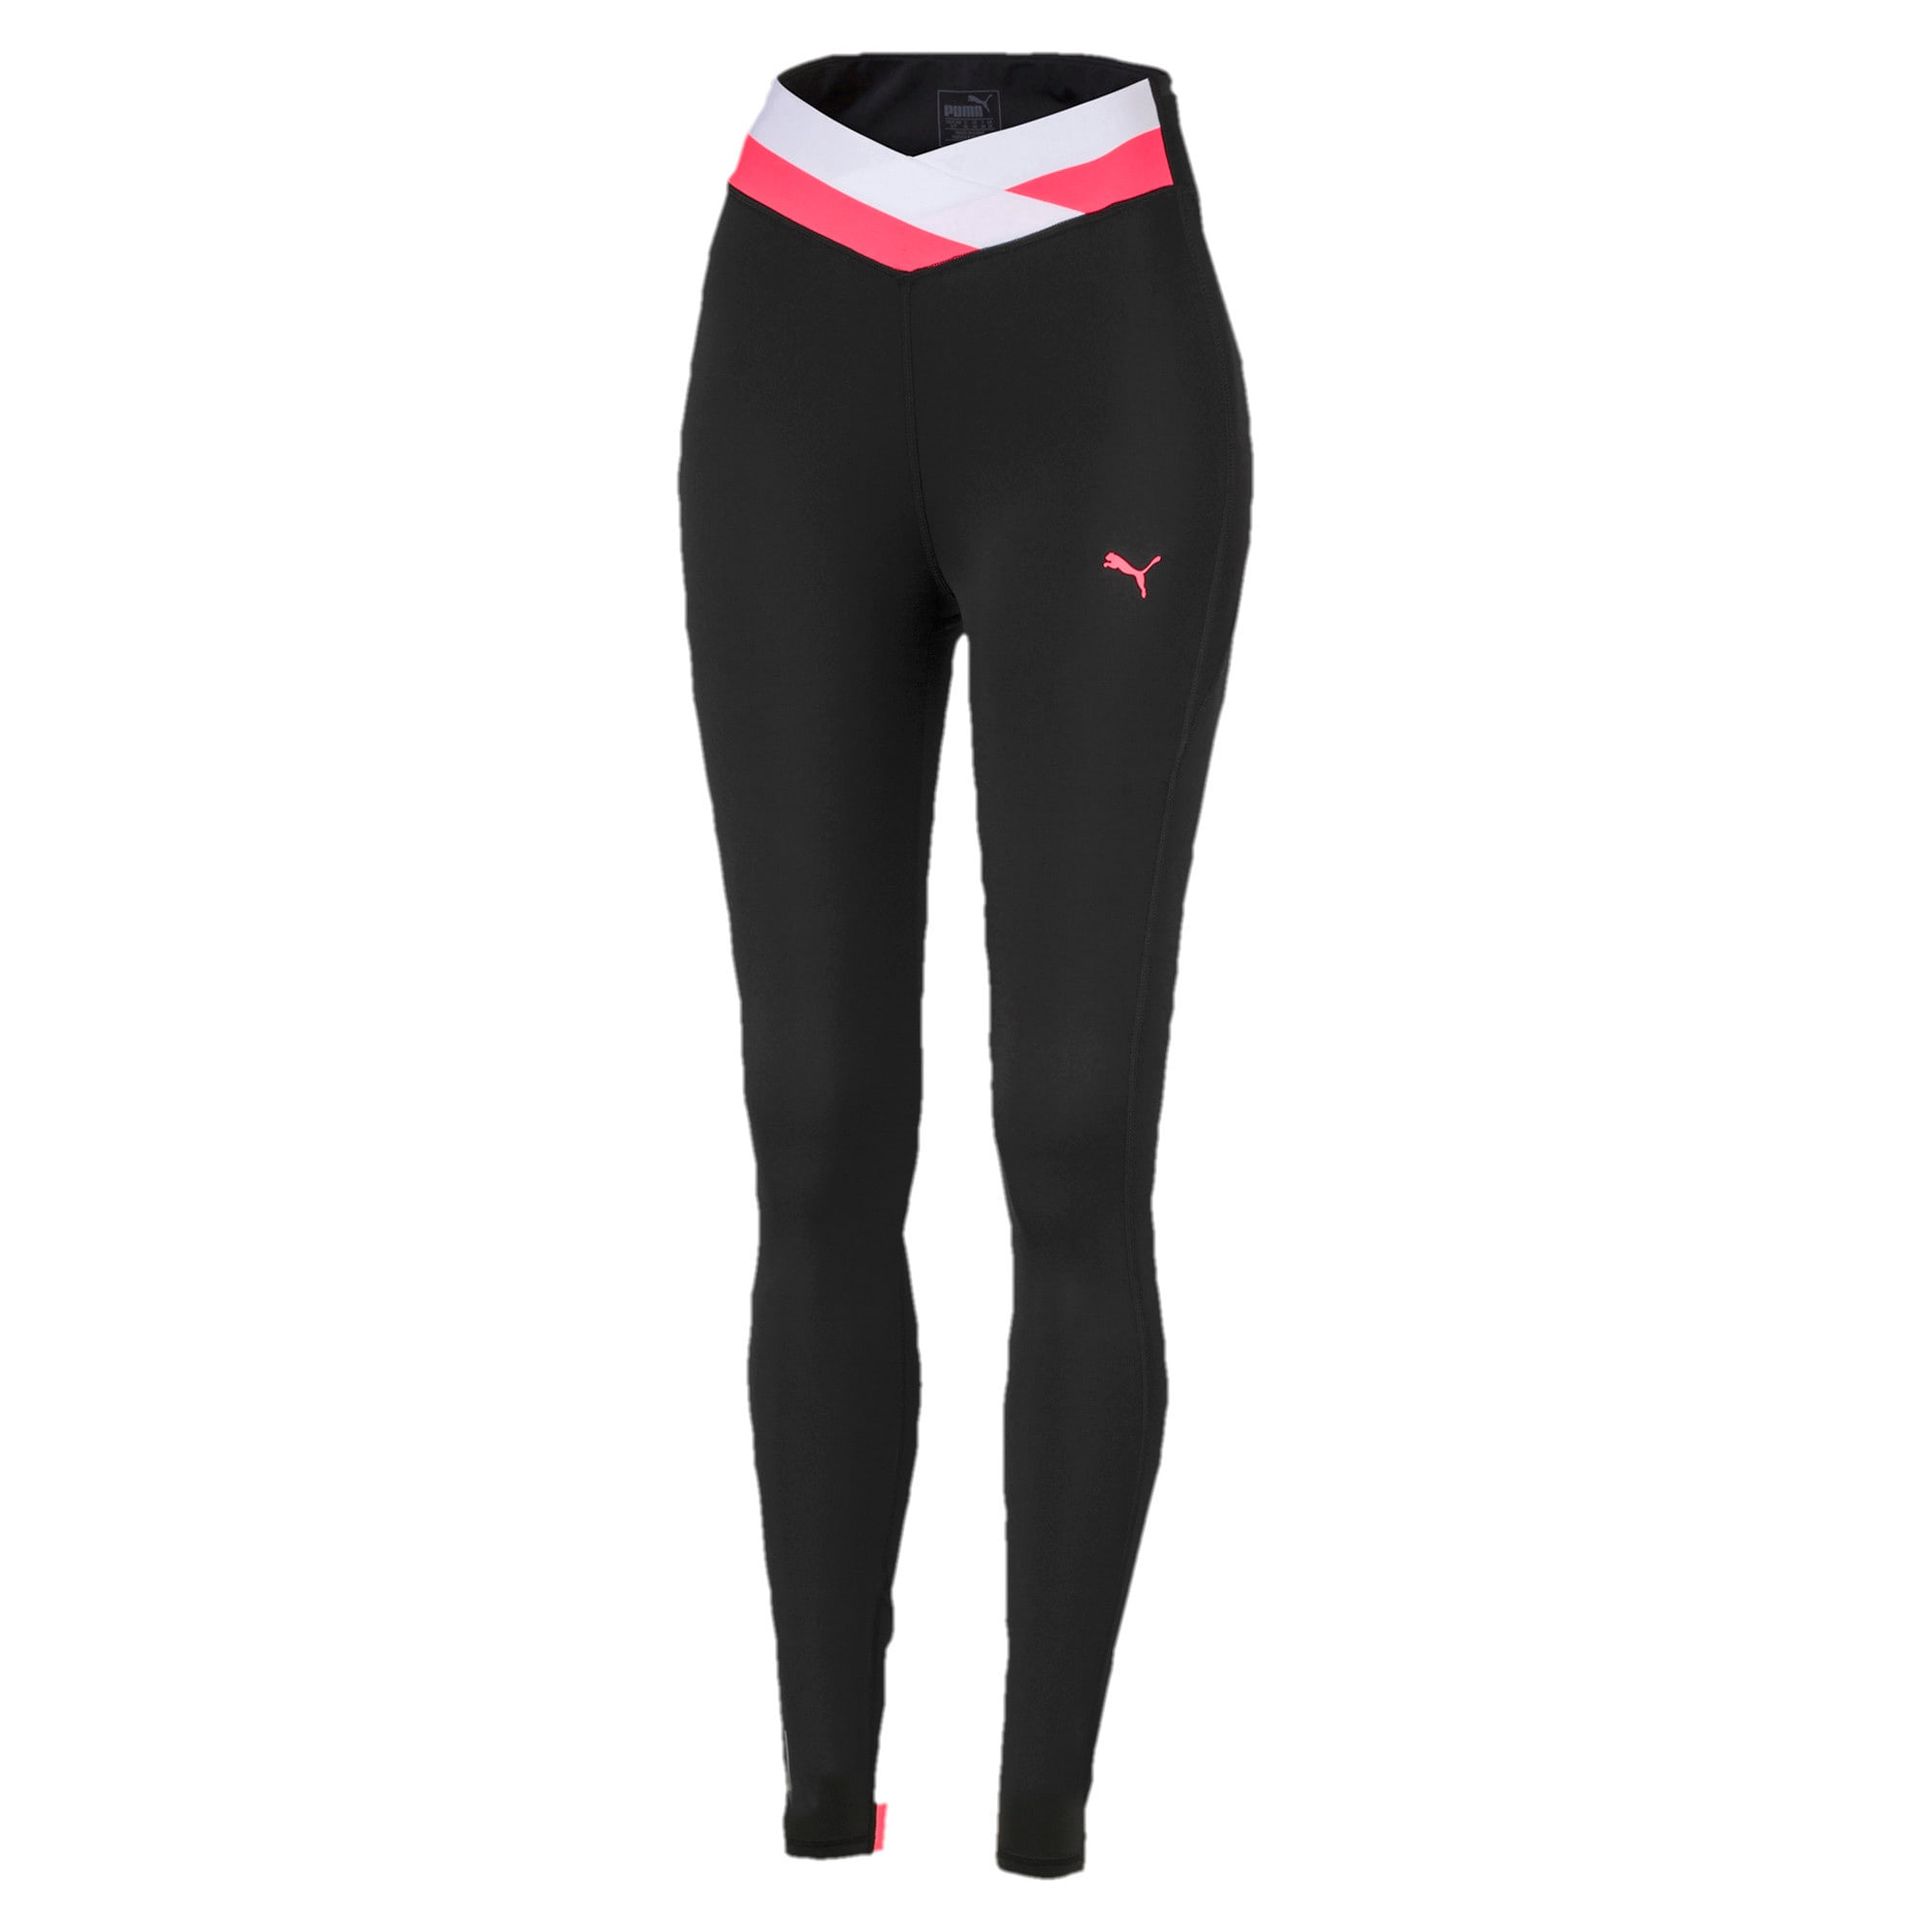 Thumbnail 4 of HIT Feel It 7/8 Women's Training Leggings, Puma Black-Pink Alert, medium